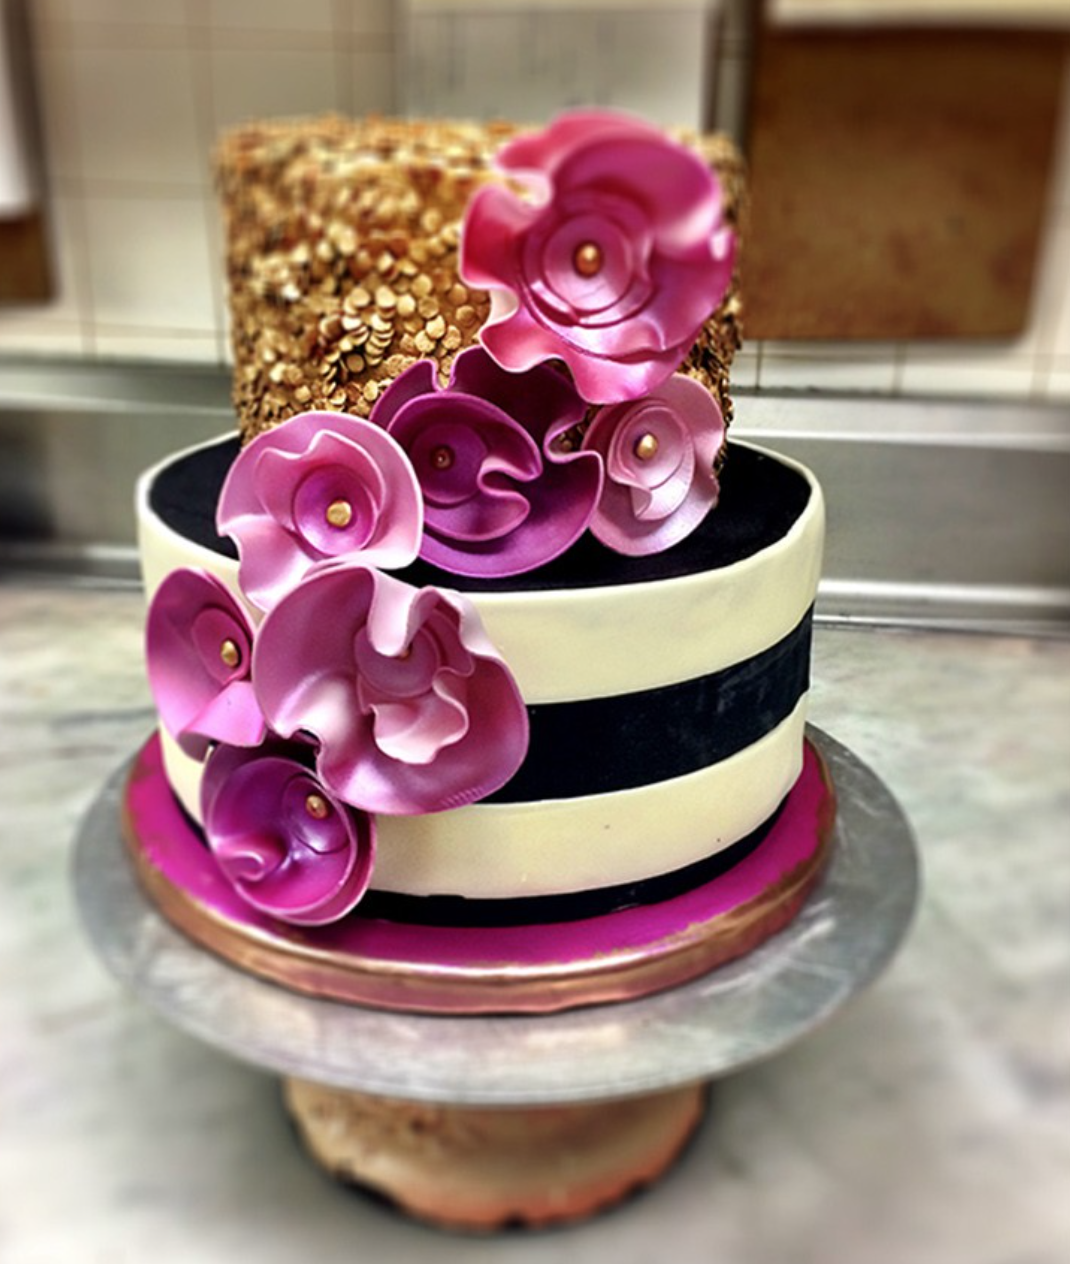 striped cakes with pink sugar flowers